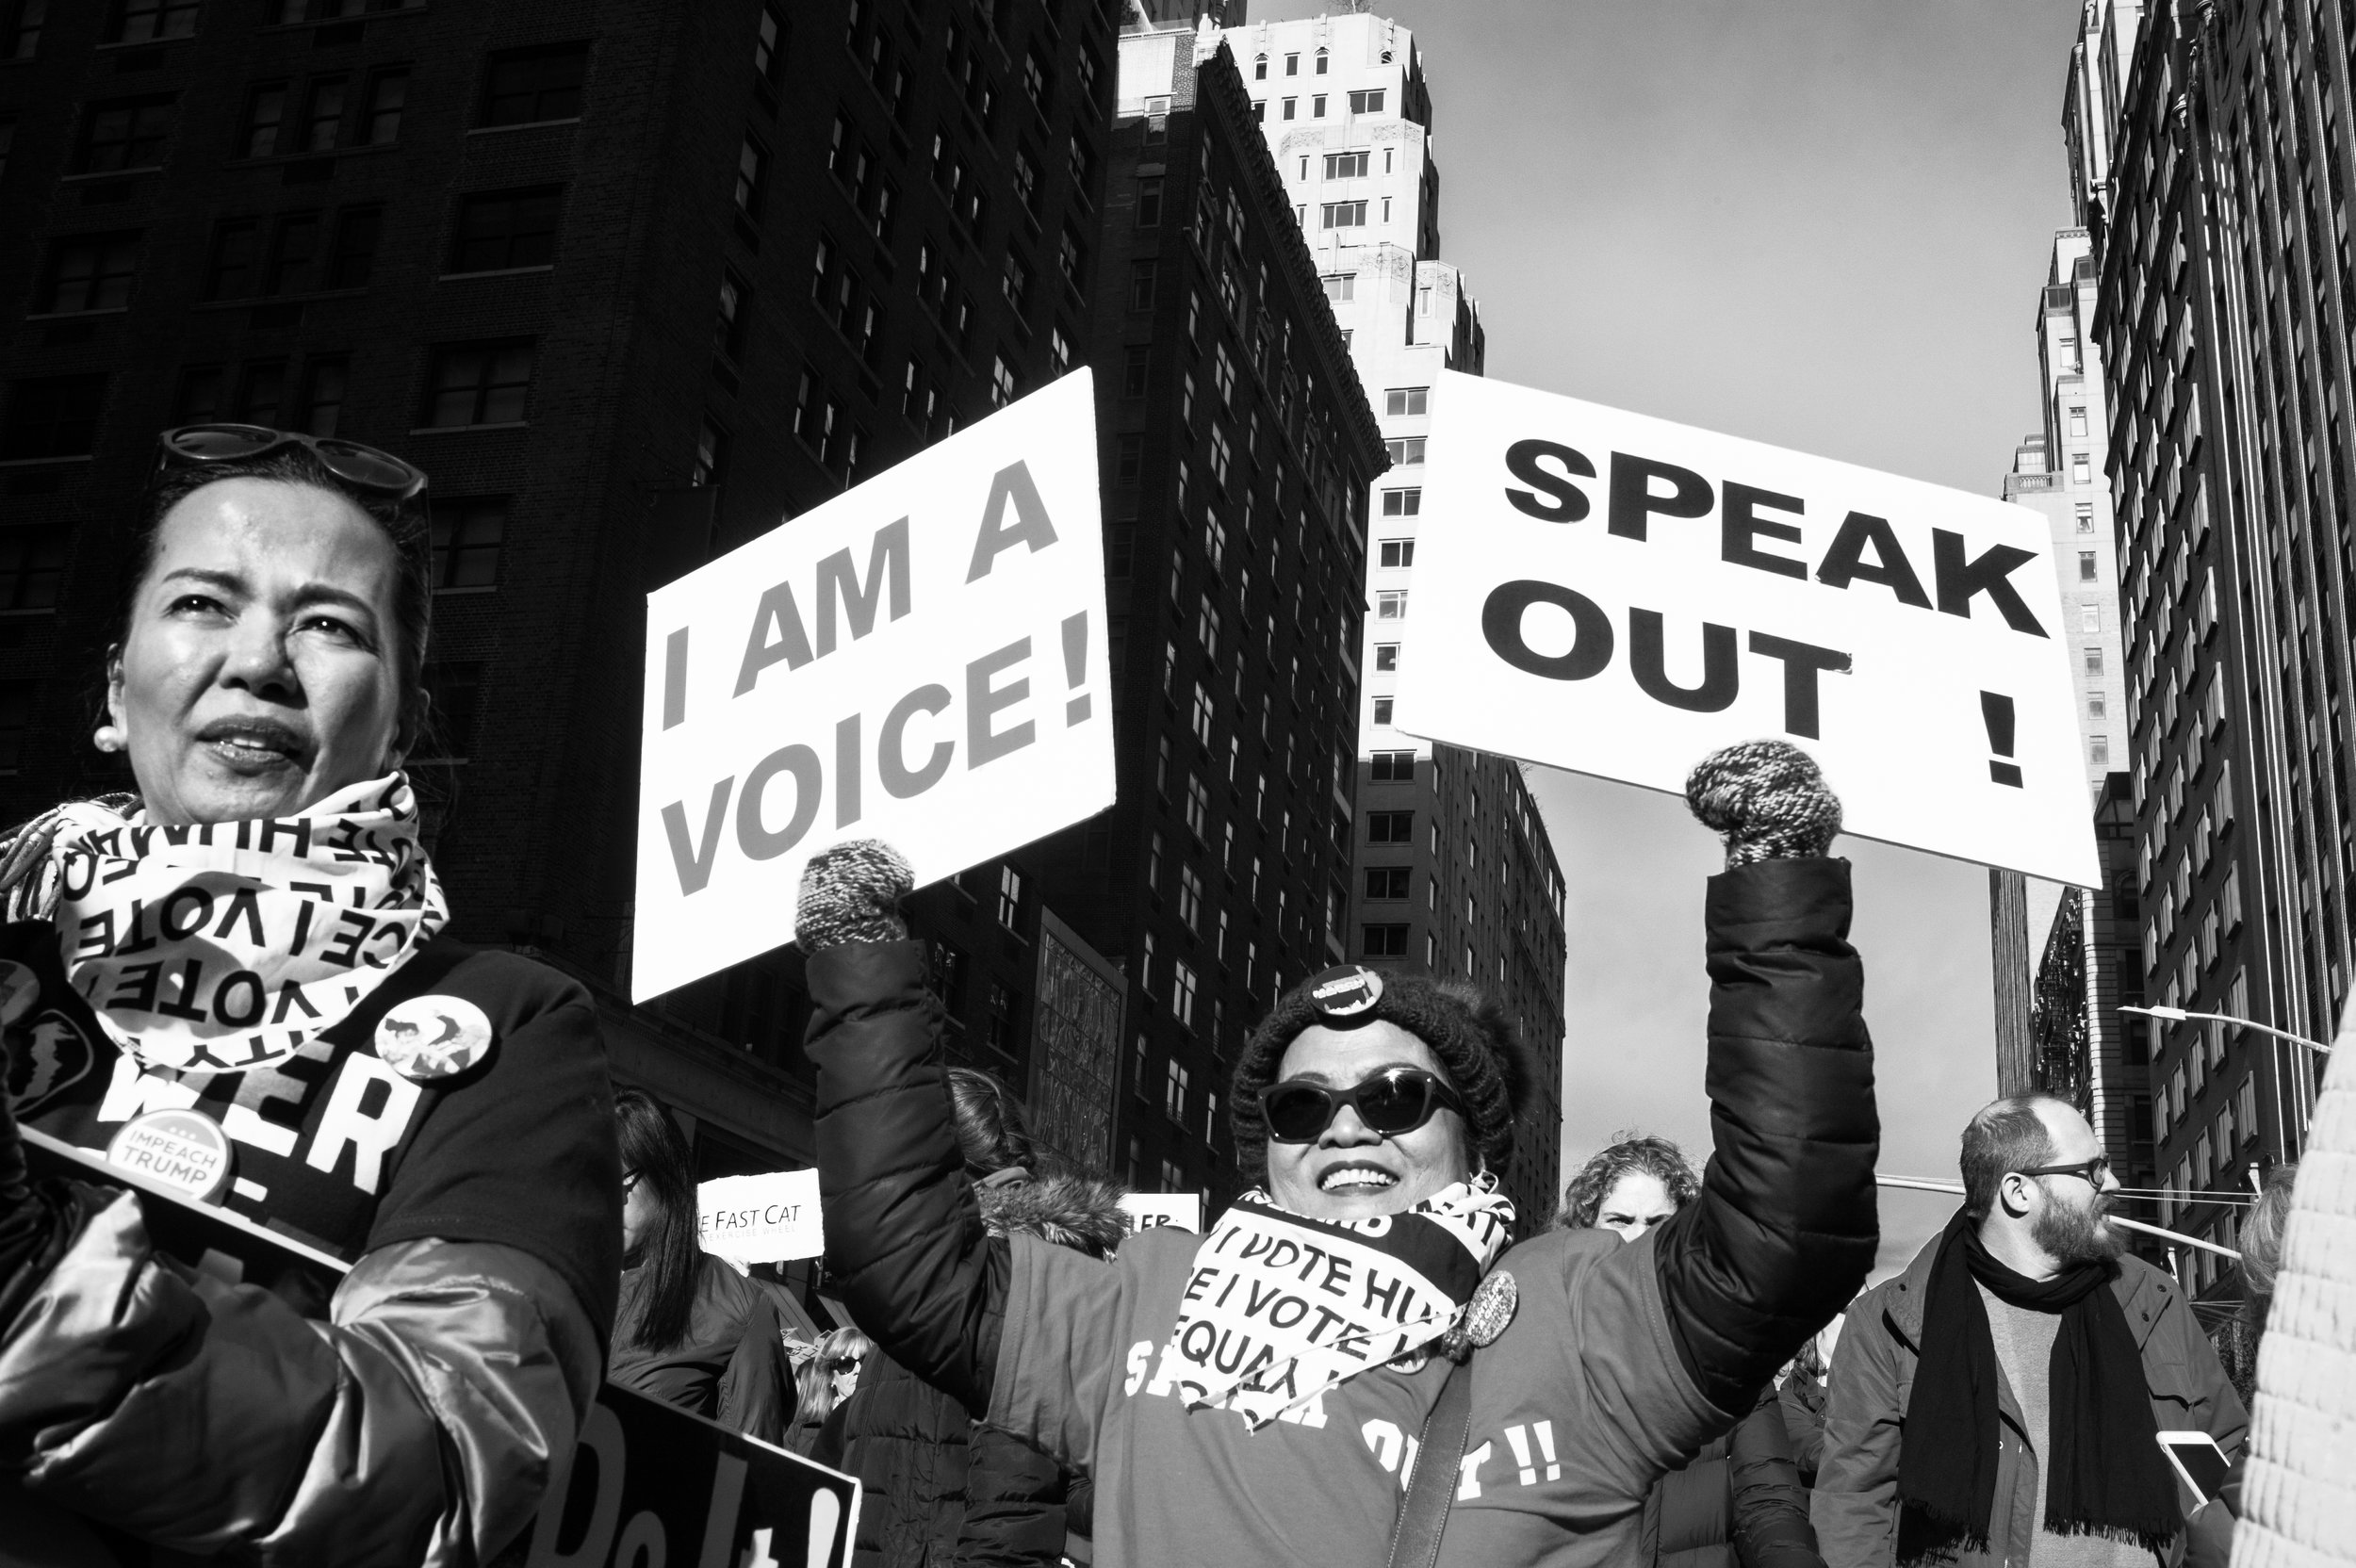 Speak Out!  I am a voice.